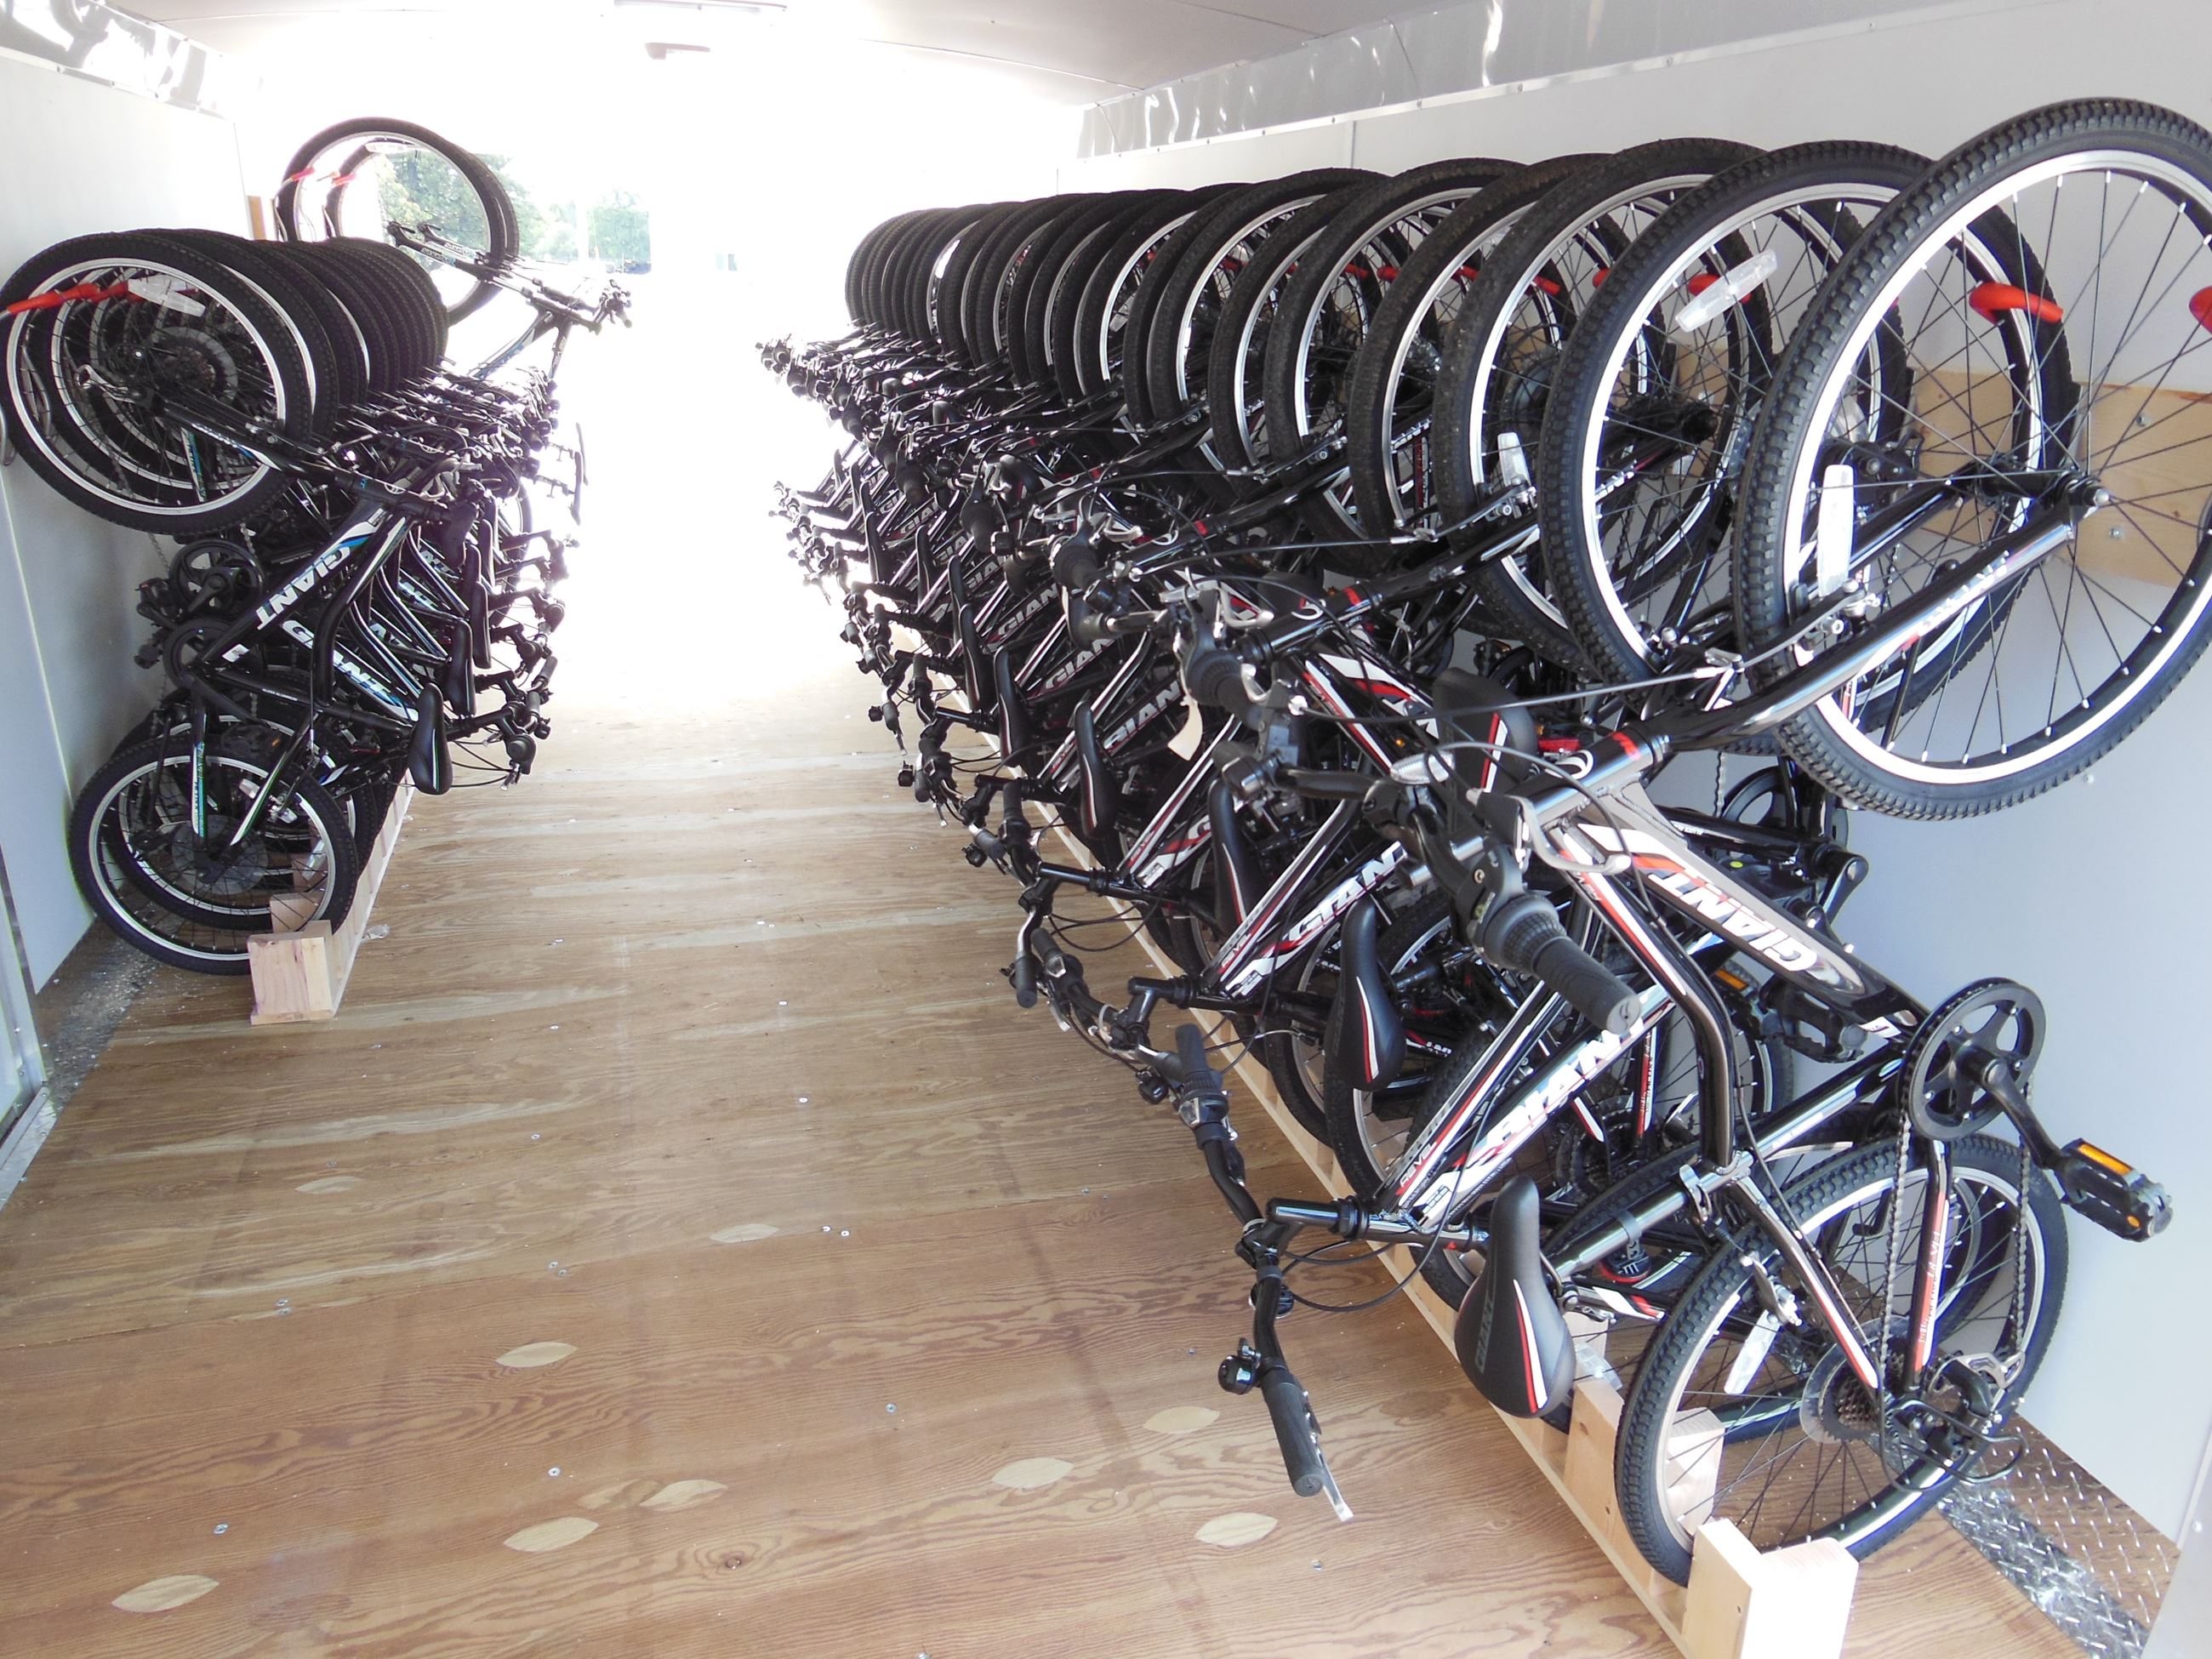 Bike Fleet (Inside Trailer)